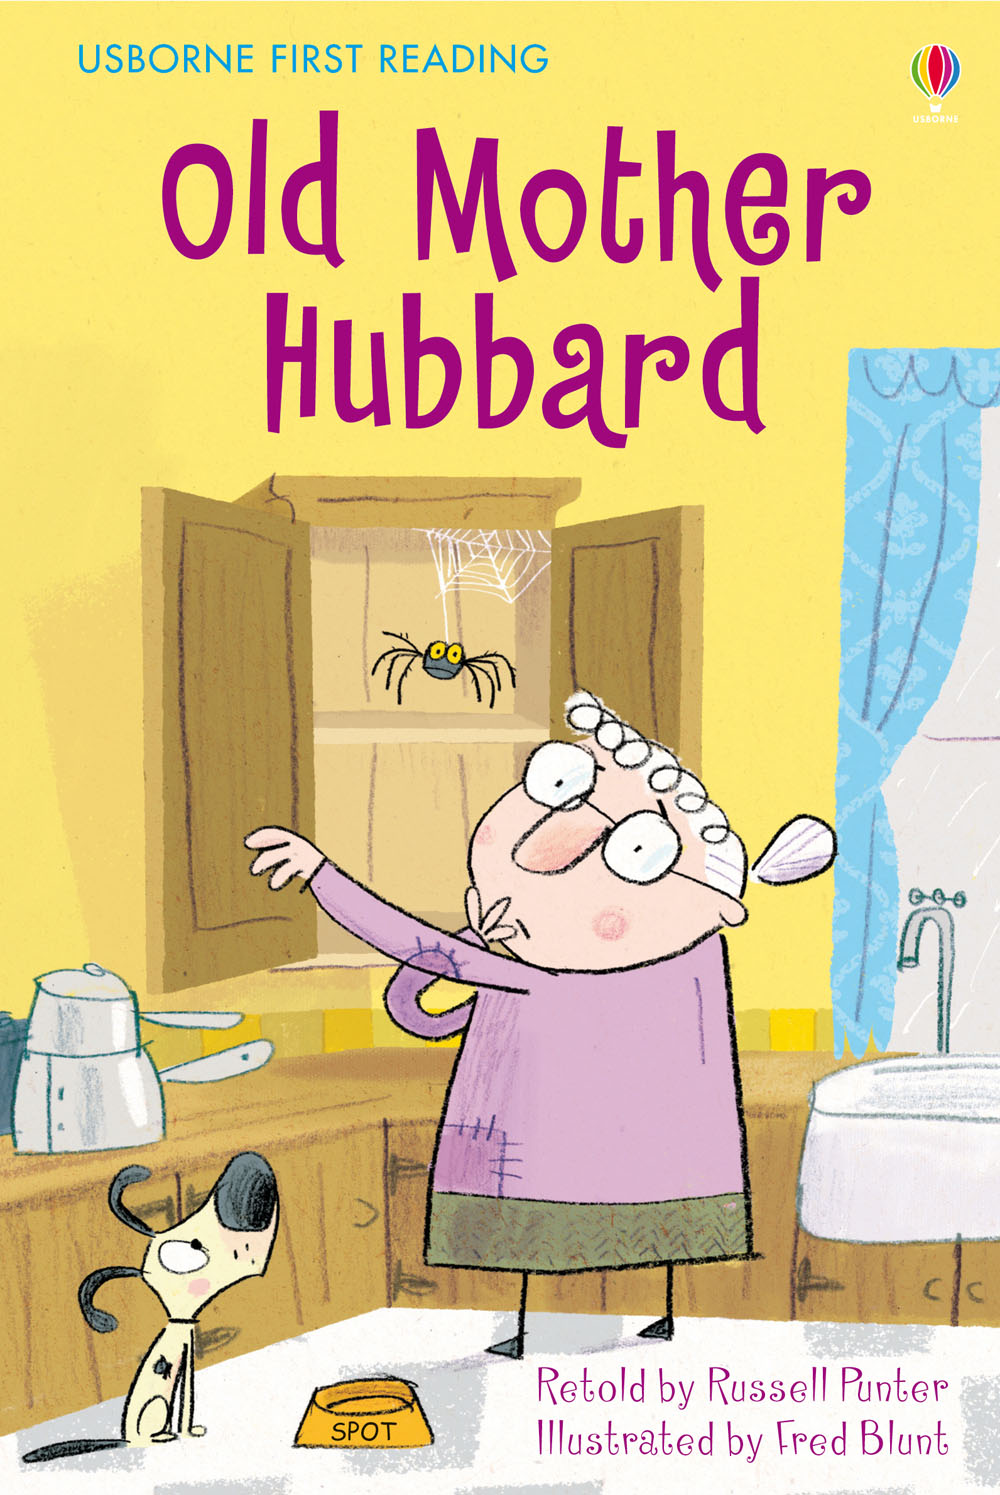 store book hubbard on adult